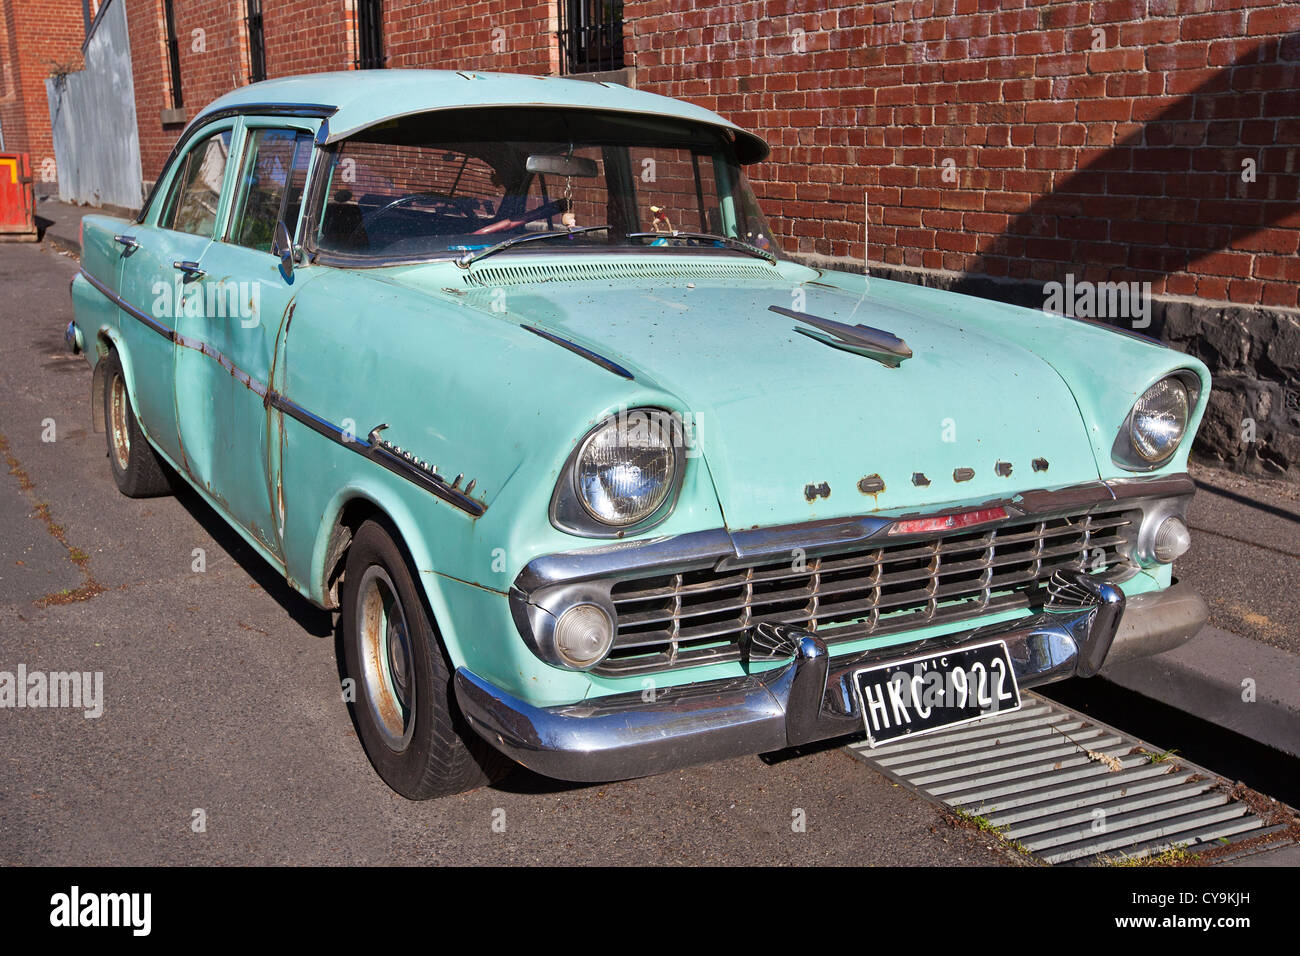 Funky Old School Cars For Sale Australia Mold - Classic Cars Ideas ...